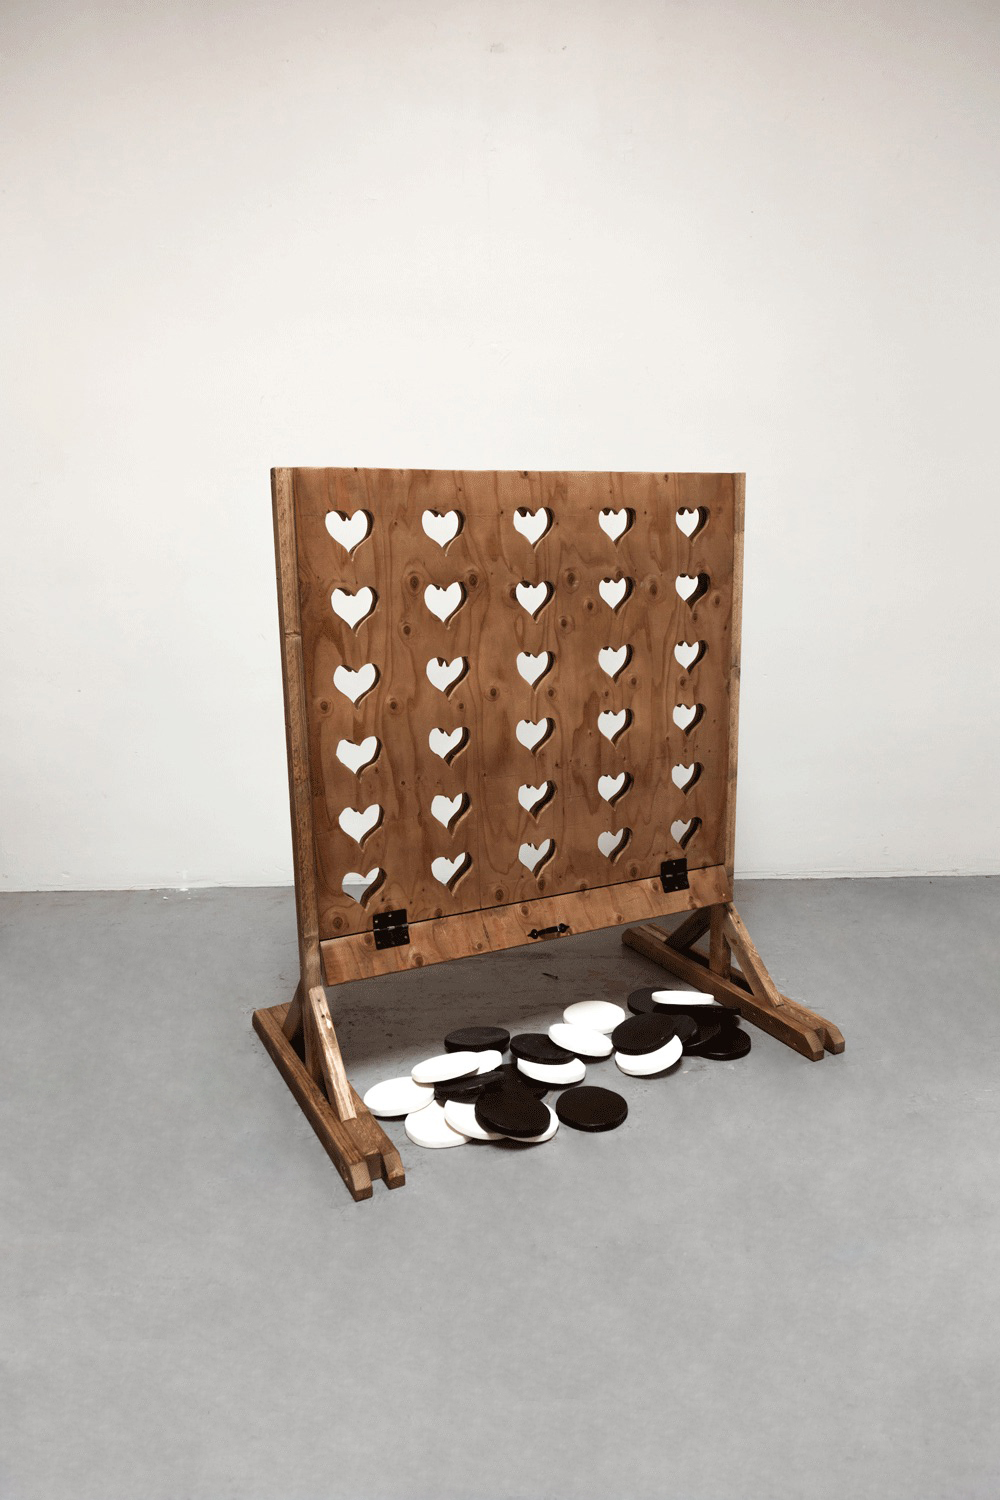 Connect Four (Heart-Shaped) $75